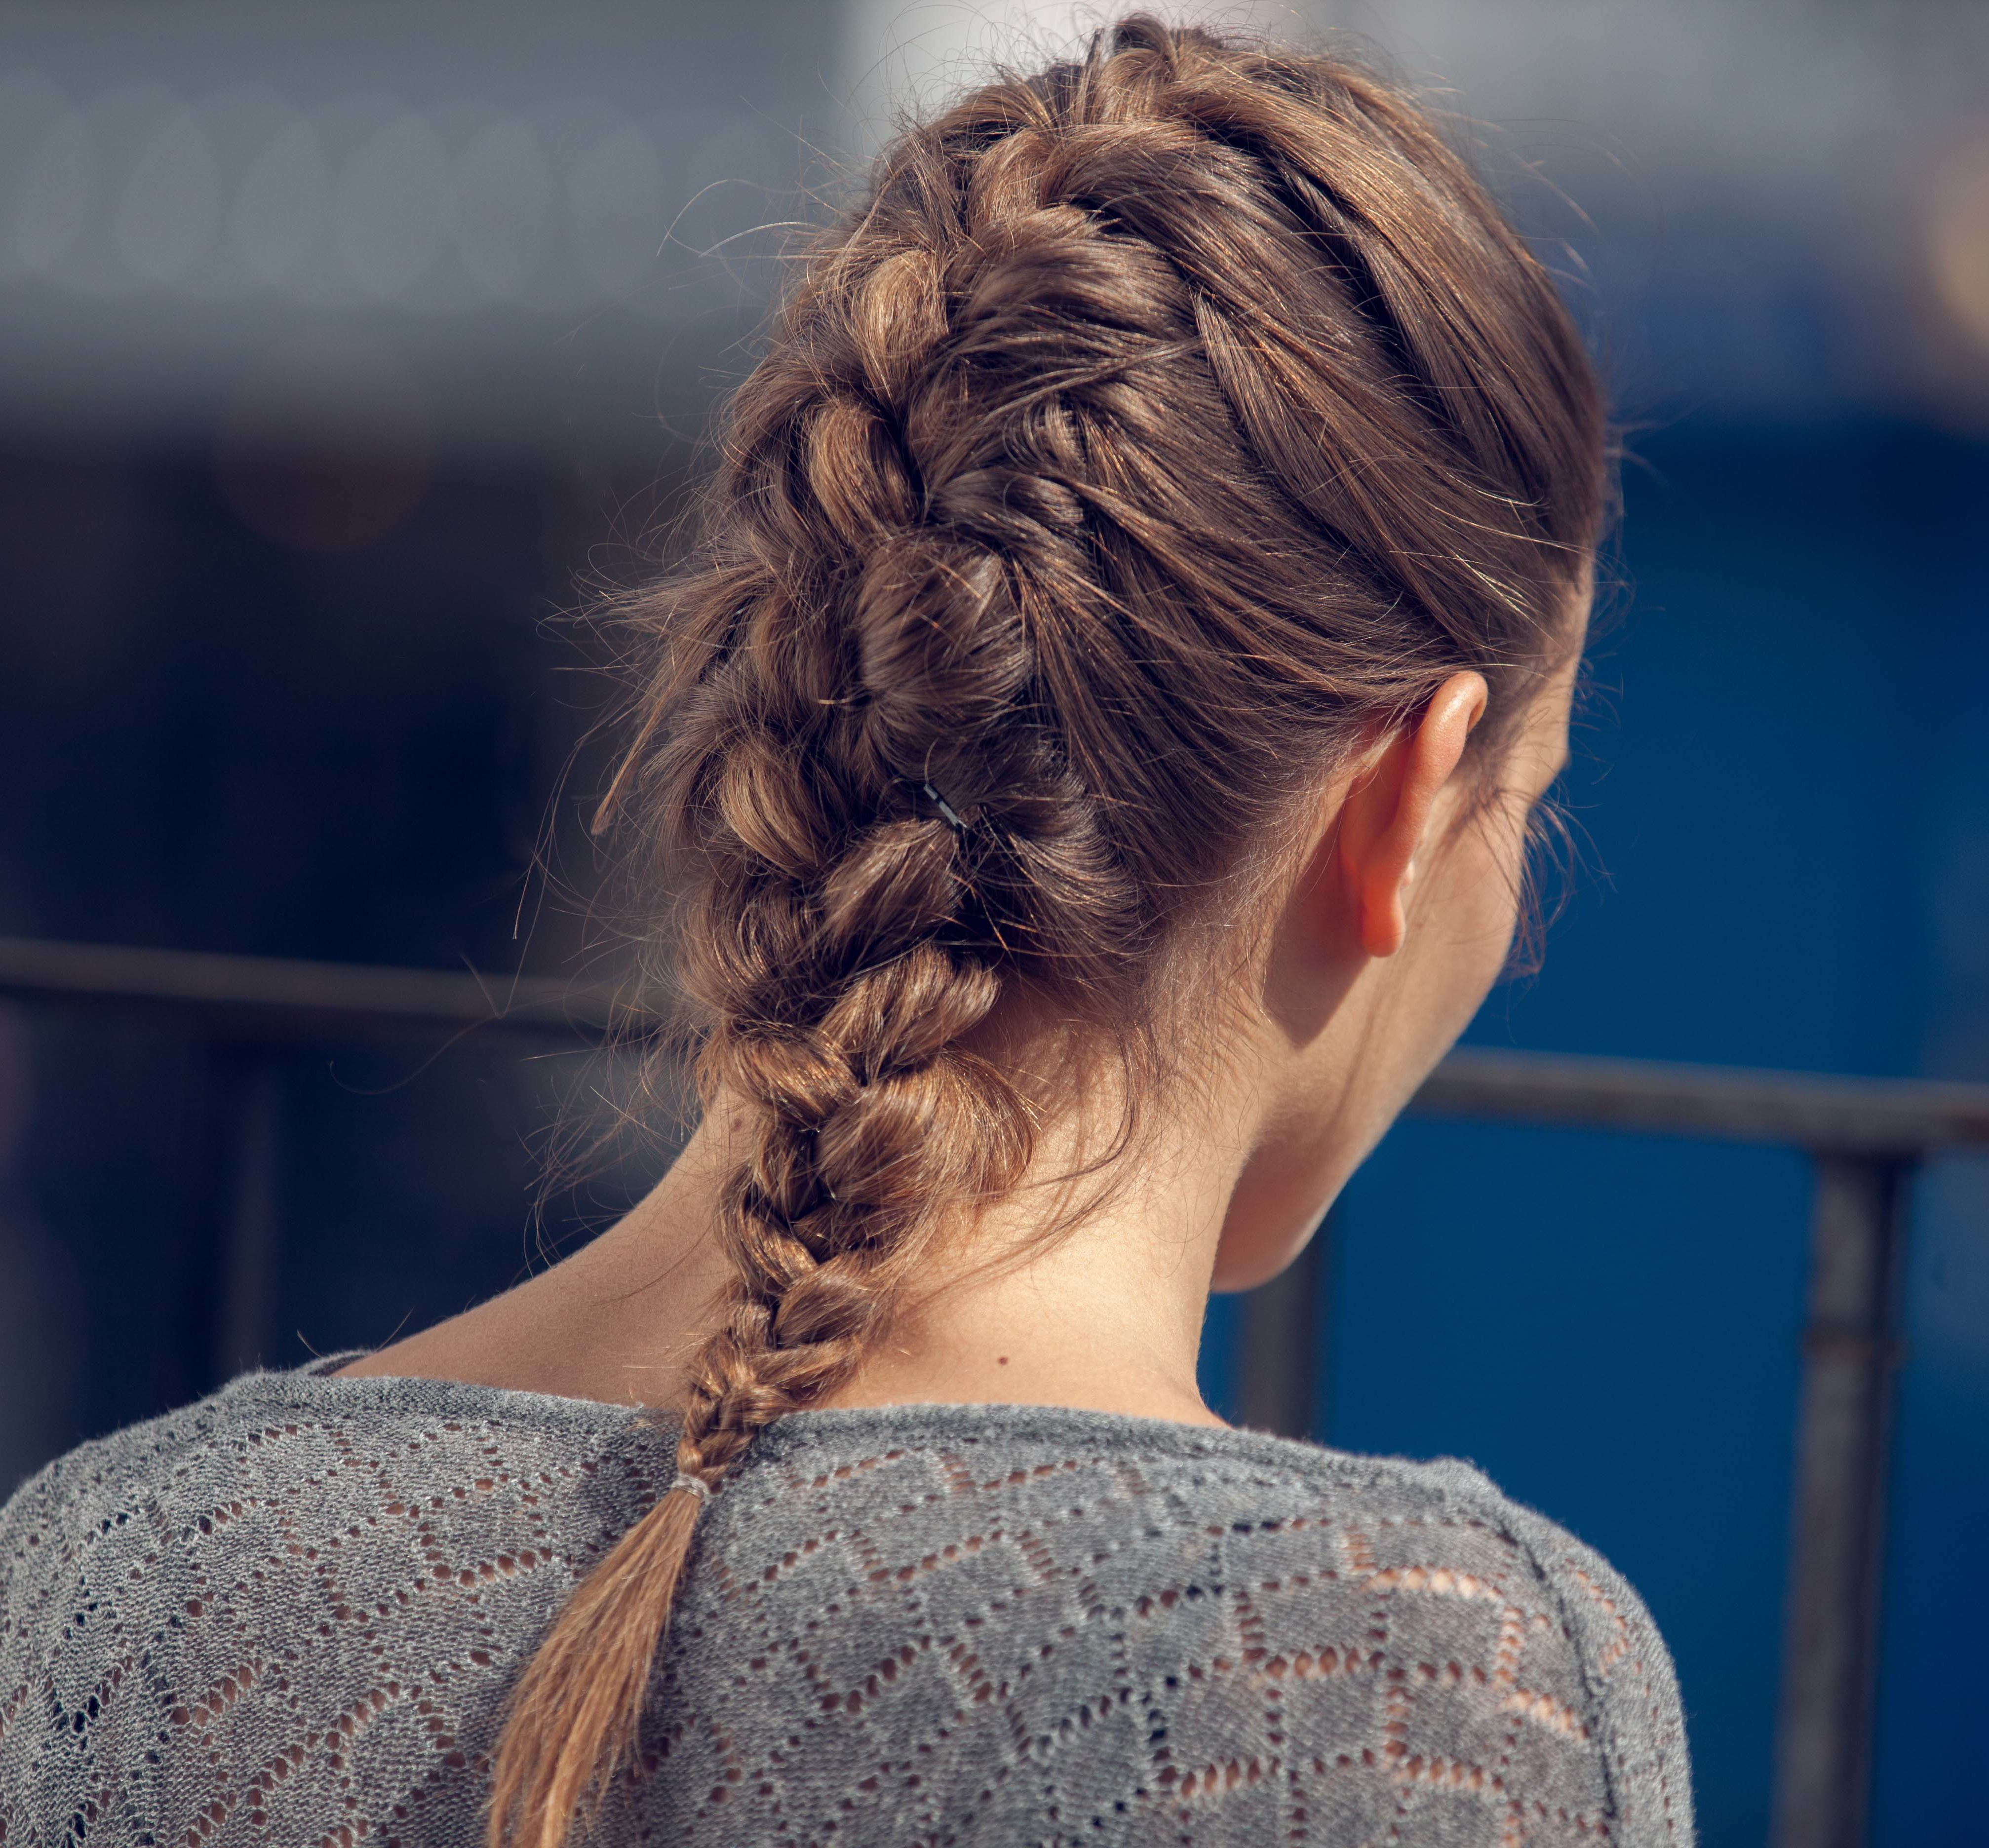 Recent Thick Two Side Fishtails Braid Hairstyles Regarding Hairstyles For Thick Hair: 4 Braided Hairstyles Your Mane (View 17 of 20)